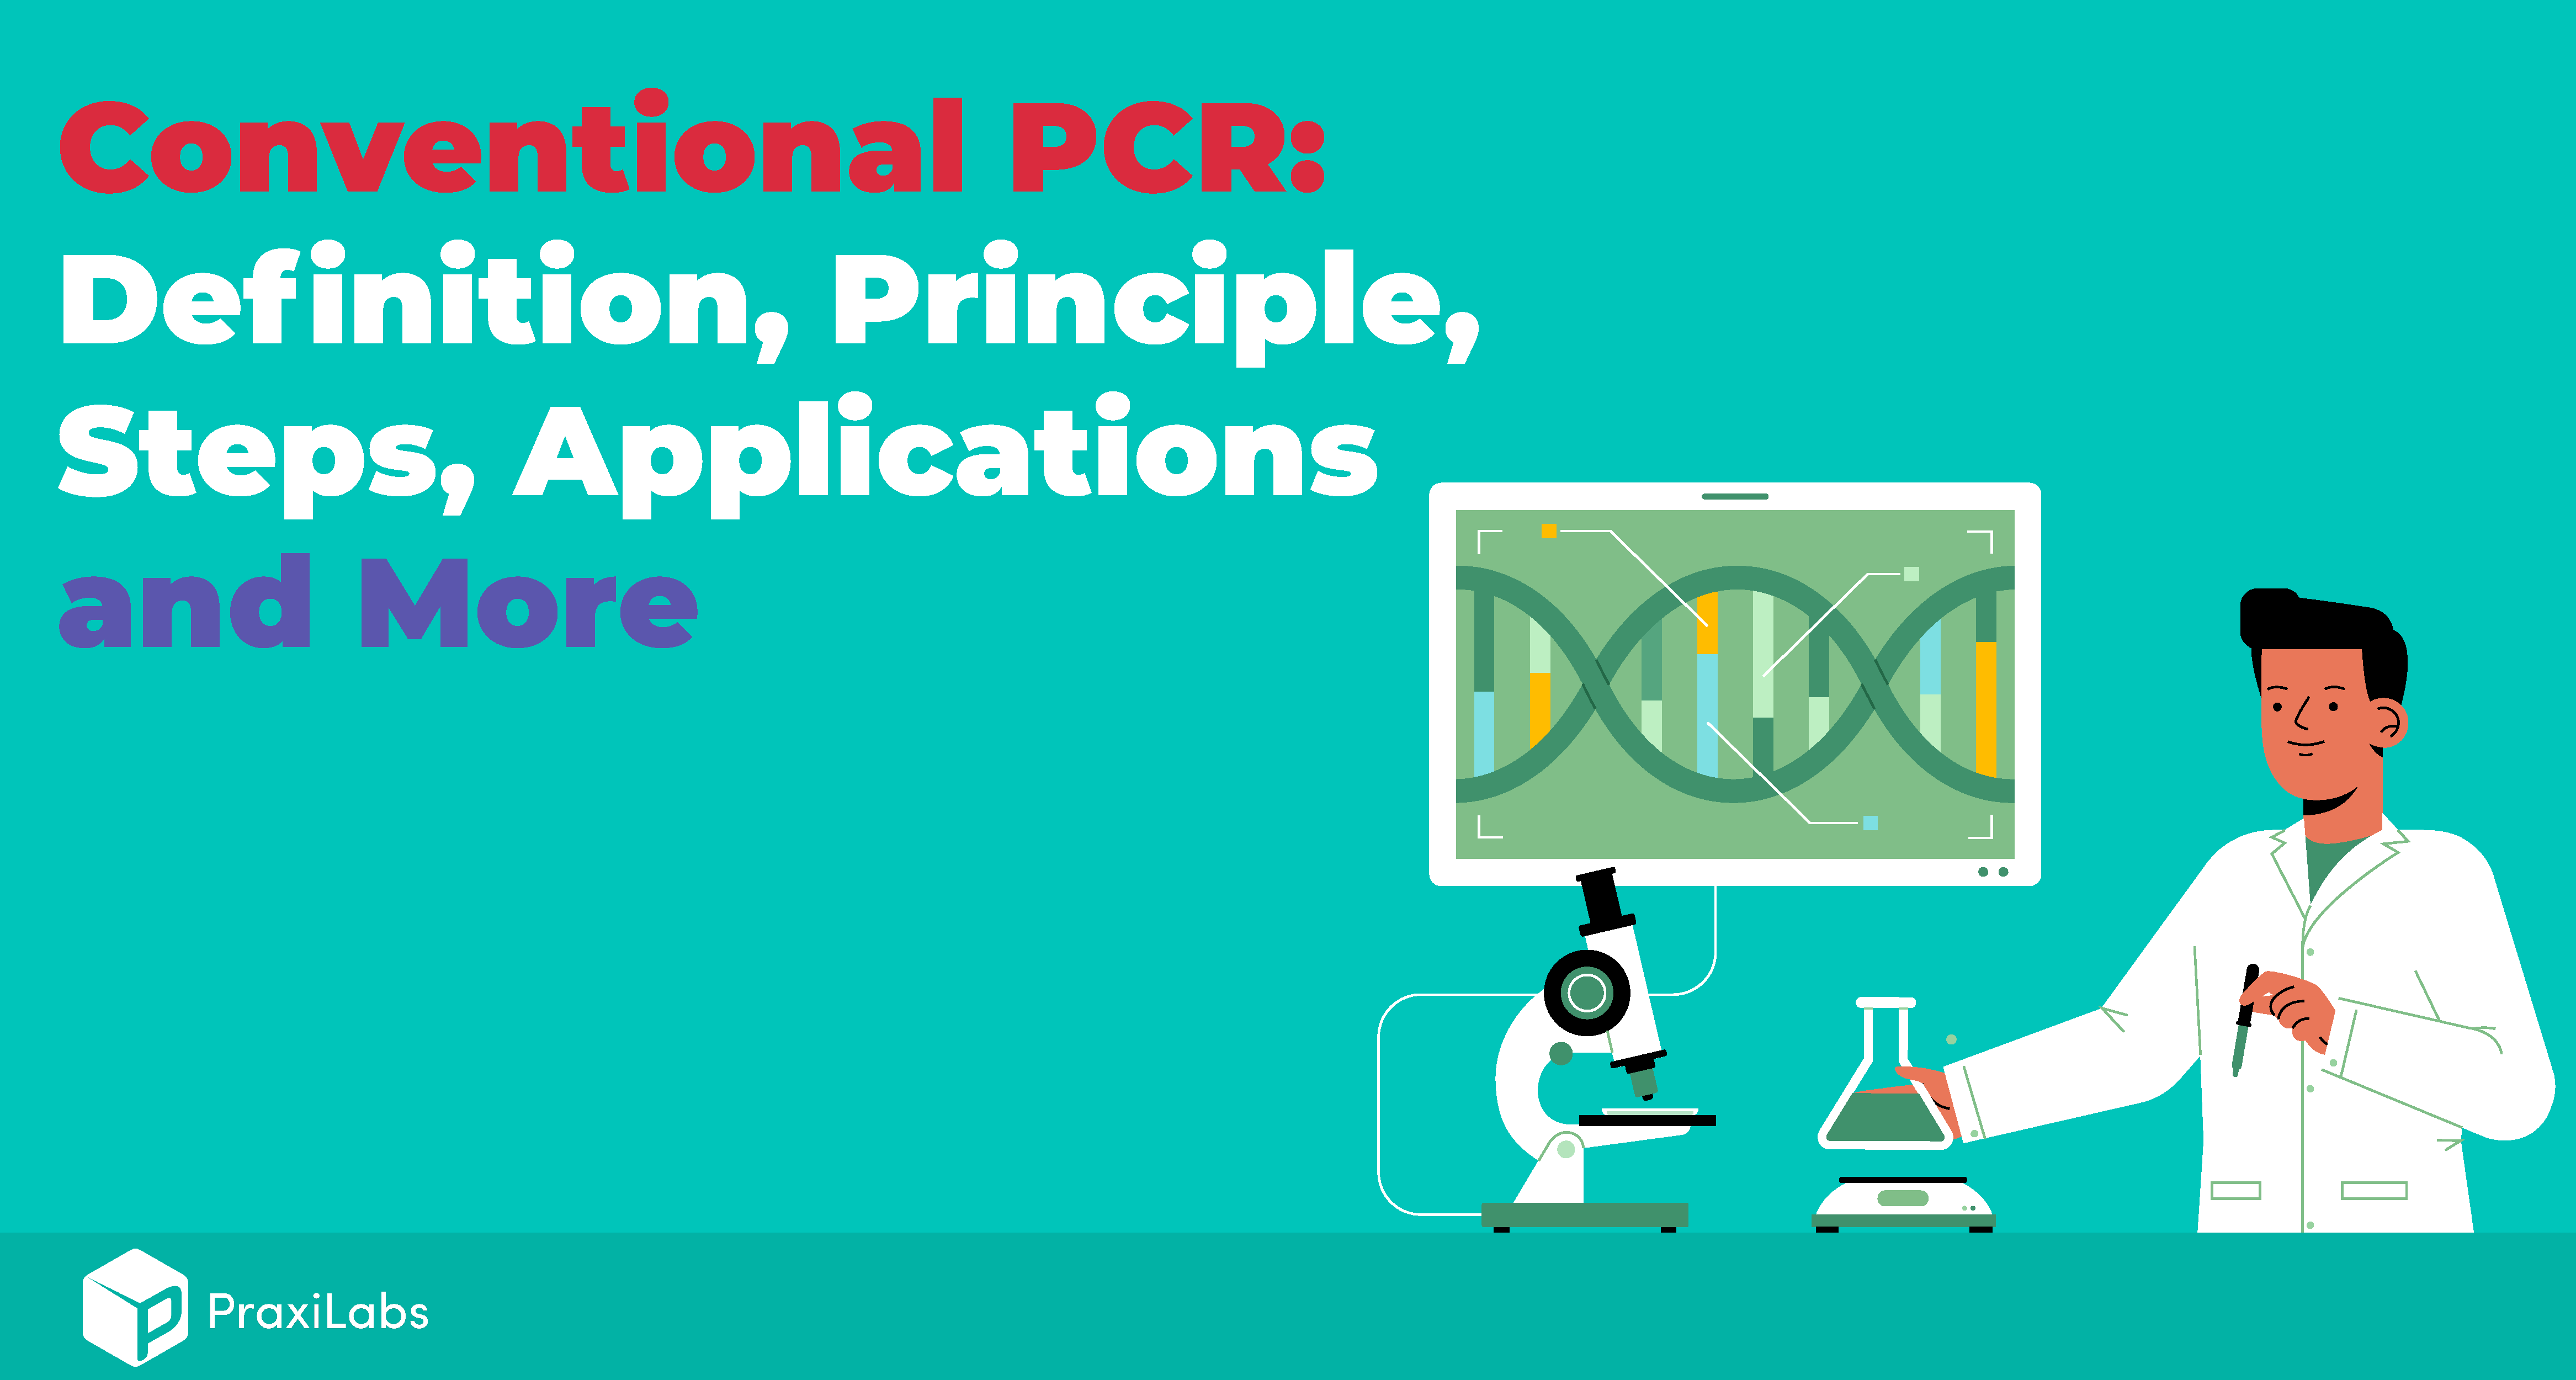 What Are The Three Basic Steps of Conventional PCR?